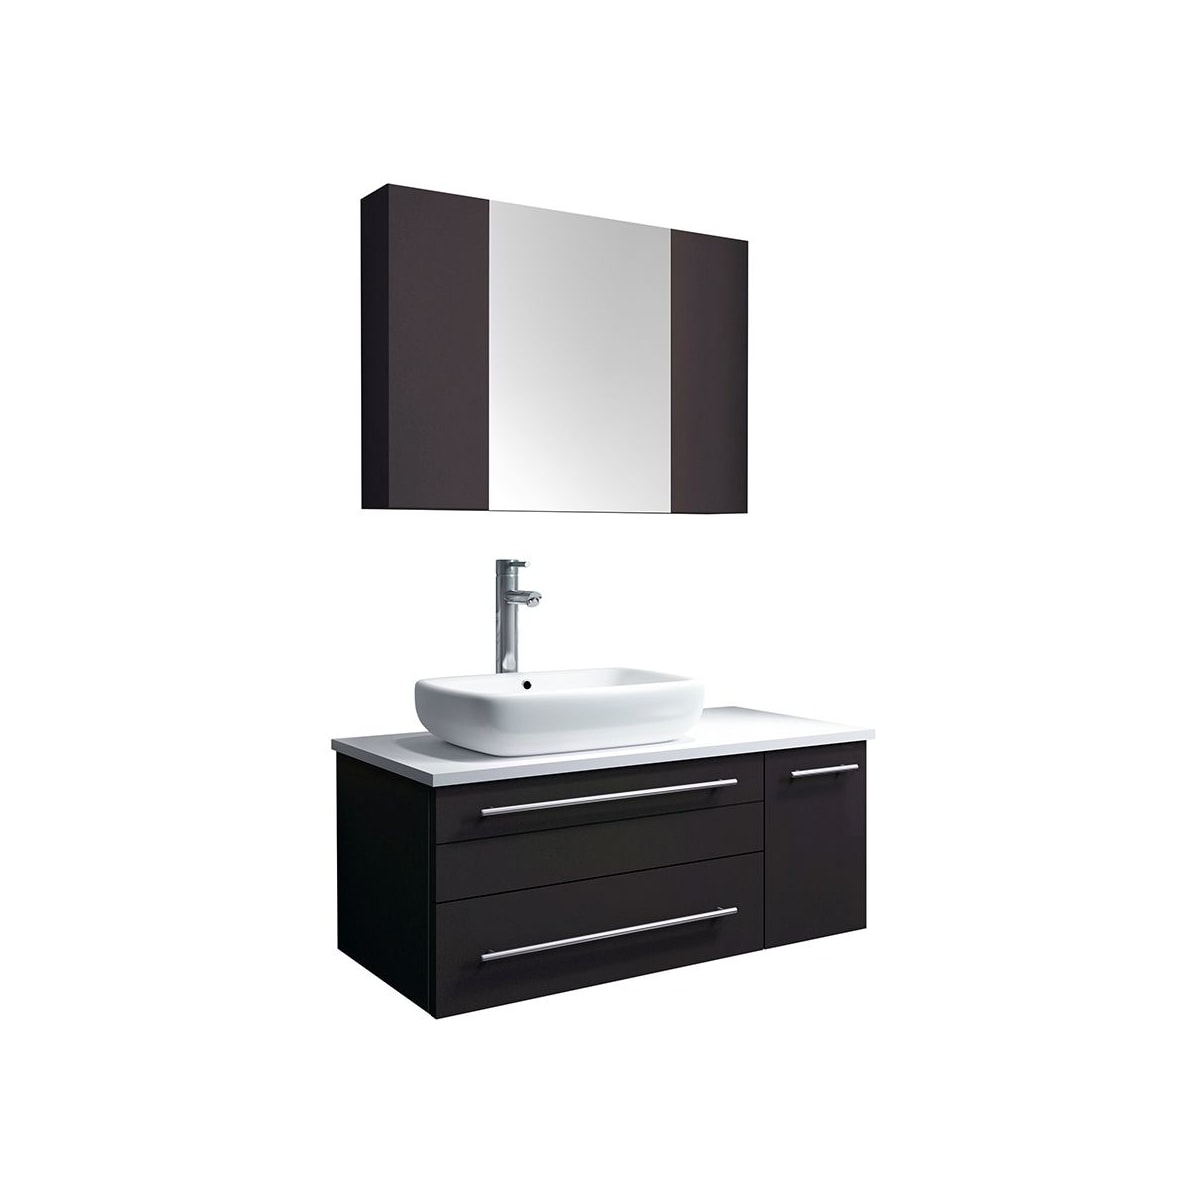 Picture of: Fresca Fvn6136es Vsl L Espresso Stella 36 Wall Mounted Single Right Basin Vanity Set With Wood Cabinet Quartz Vanity Top Medicine Cabinet Faucet And Frameless Mirror Faucet Com